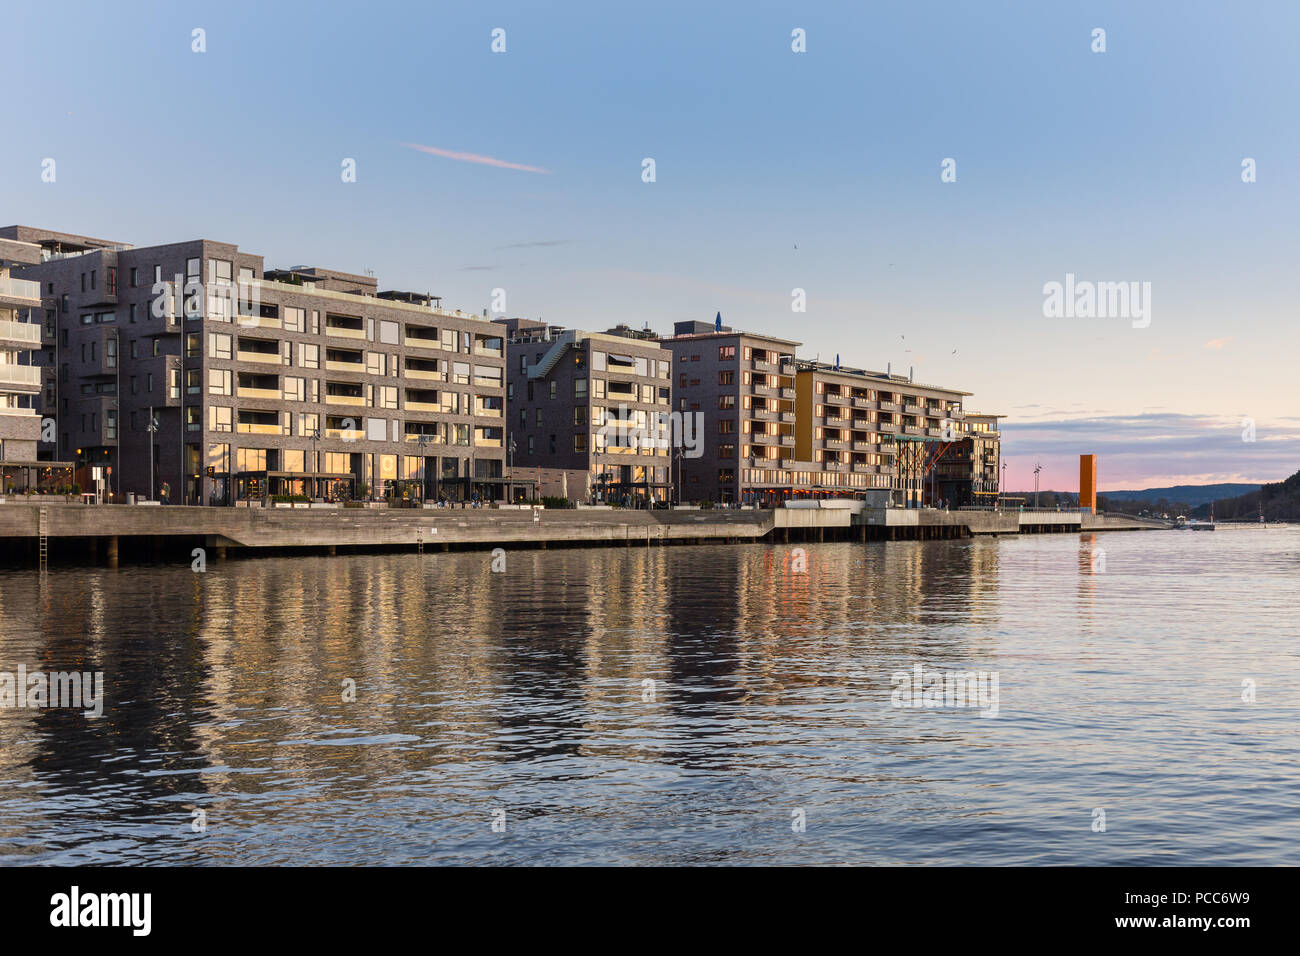 Typical example of Scandinavian architecture in the Bjørvika area in Oslo, Norway - Stock Image